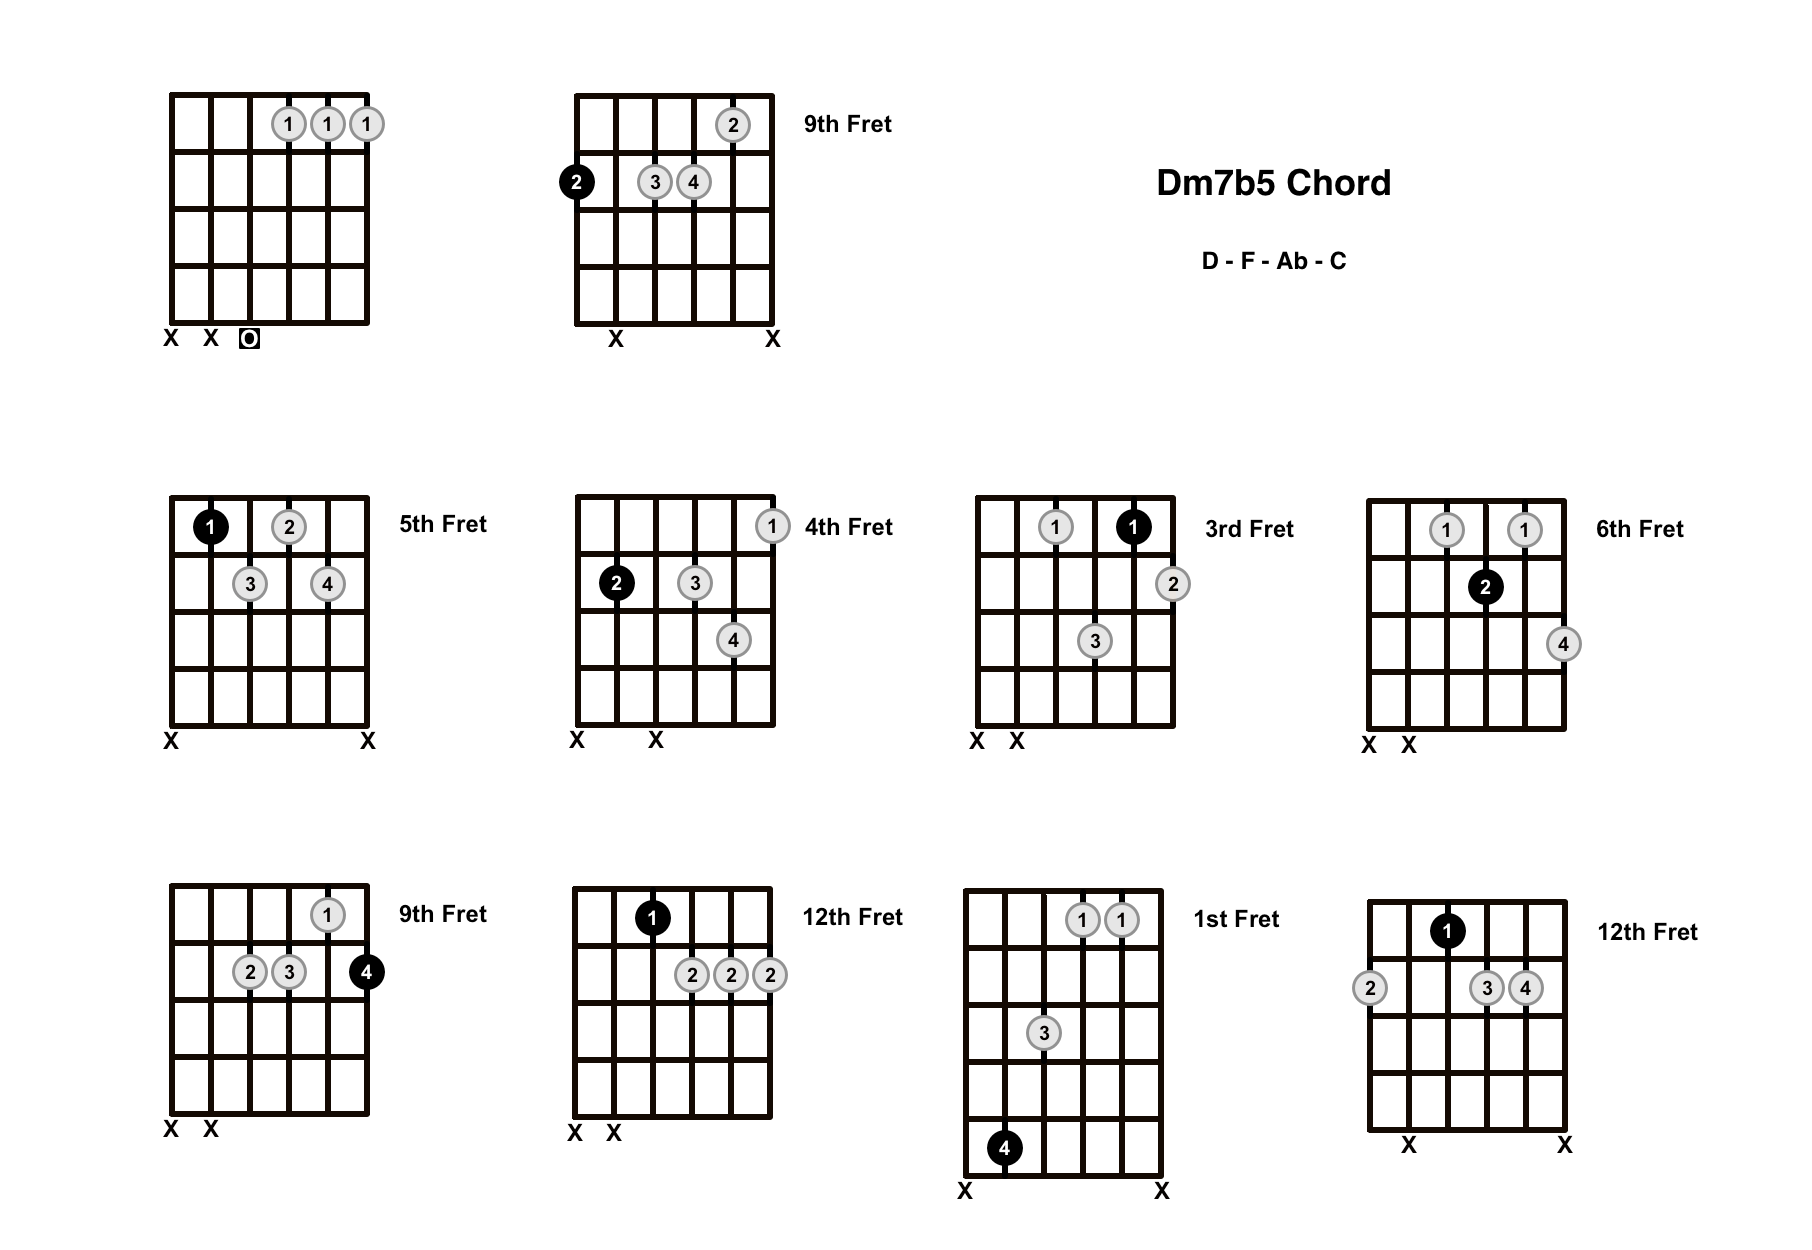 Dm7b5 Chord On The Guitar (D Minor 7 Flat 5, D Half Diminished) – Diagrams, Finger Positions and Theory